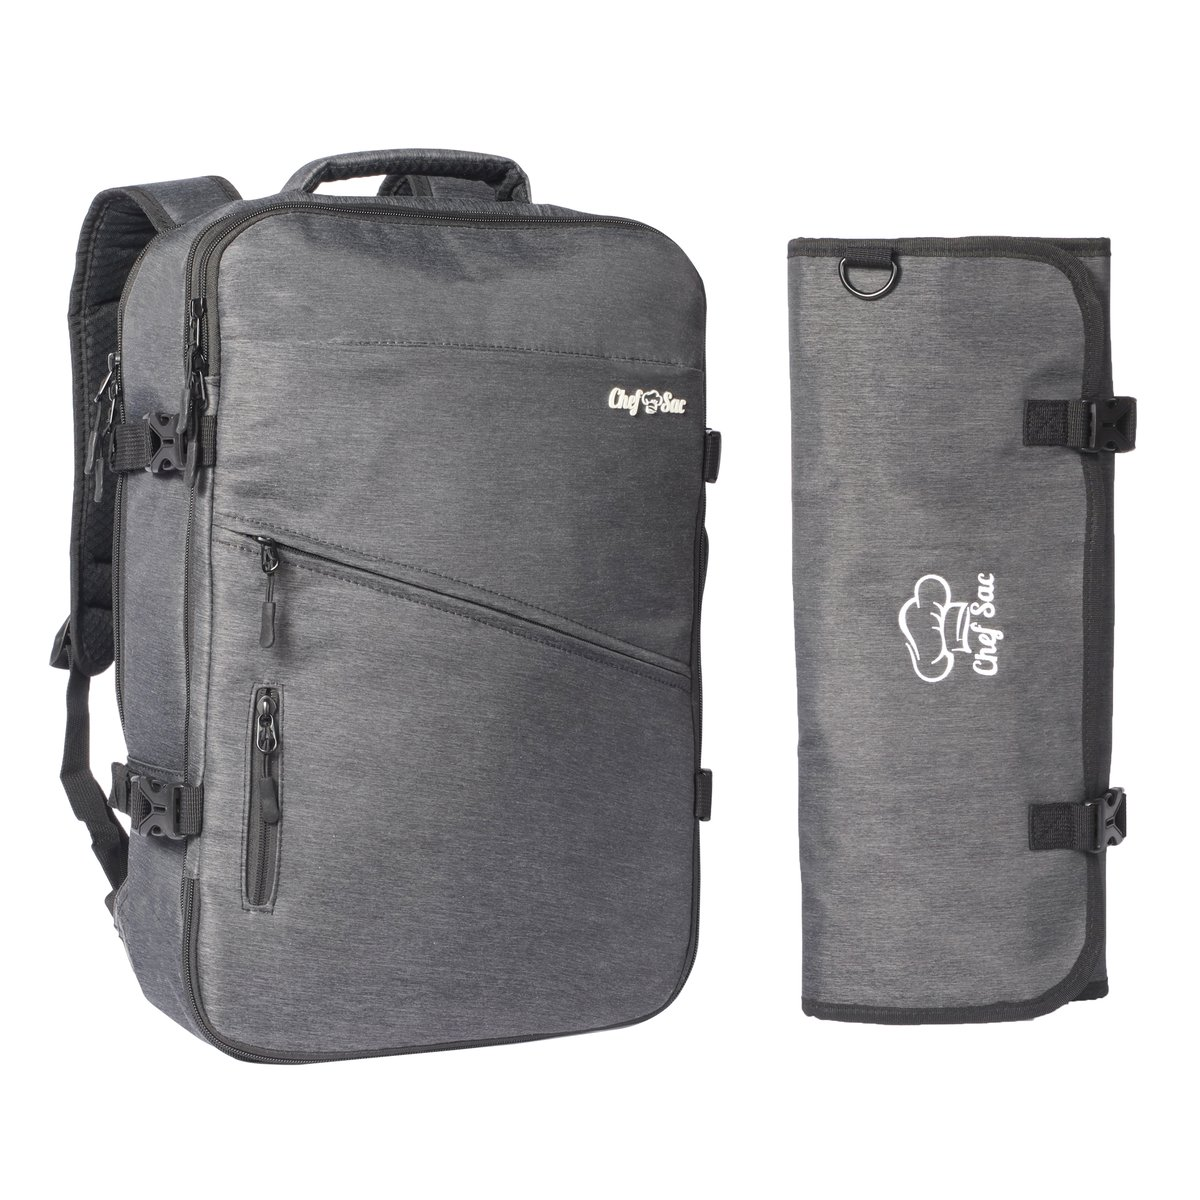 Knife Luggage and Carrier | ChefSac – Chef Sac